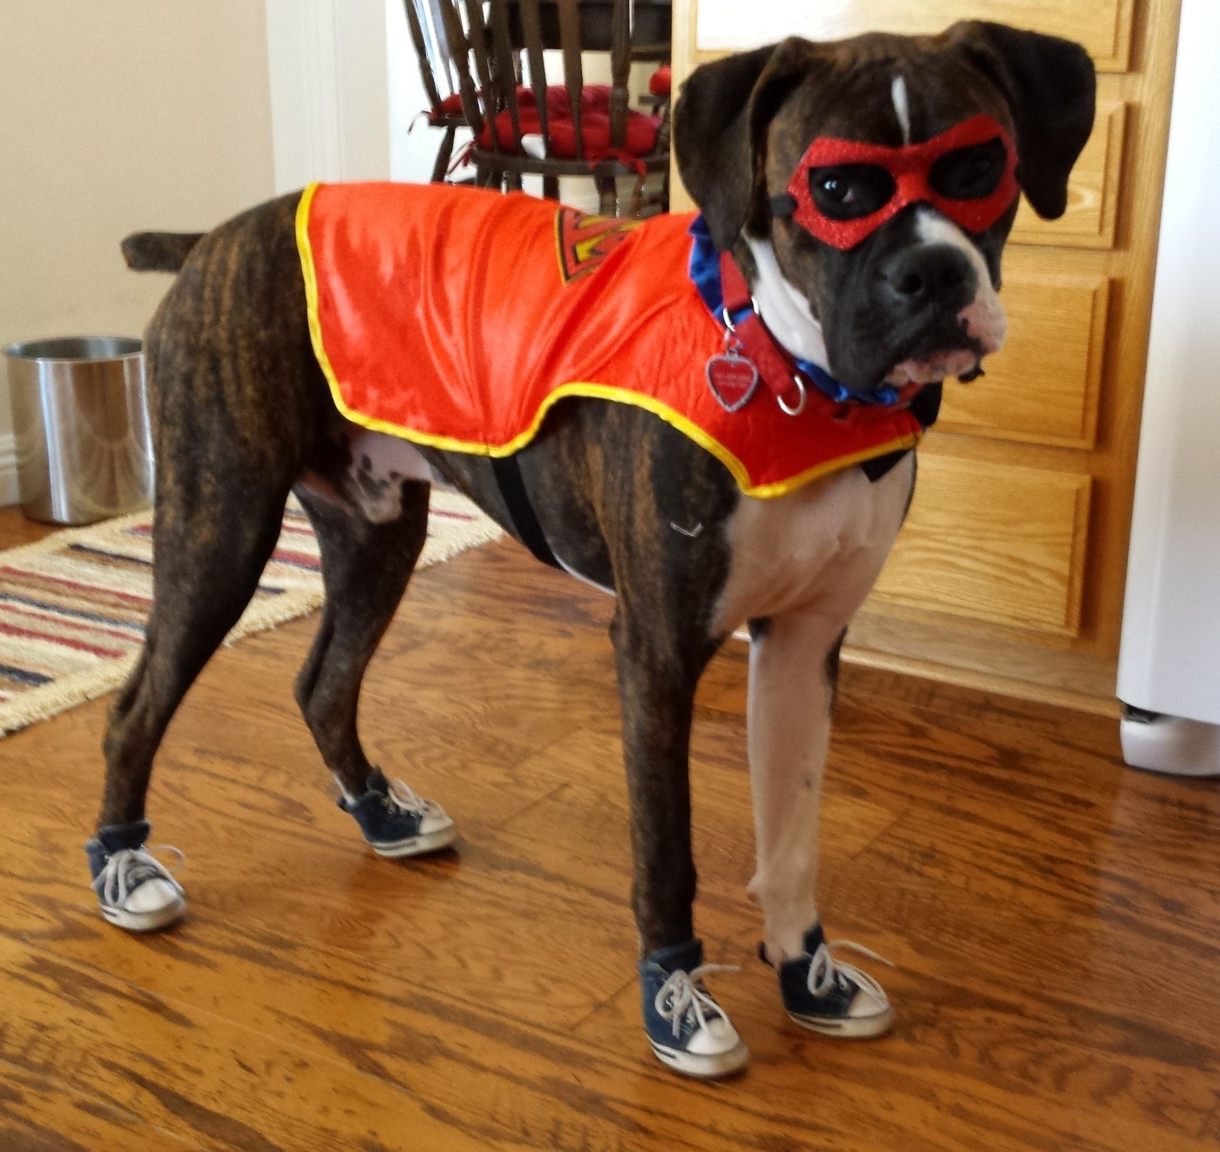 Boxer wearing sneakers and halloween costume